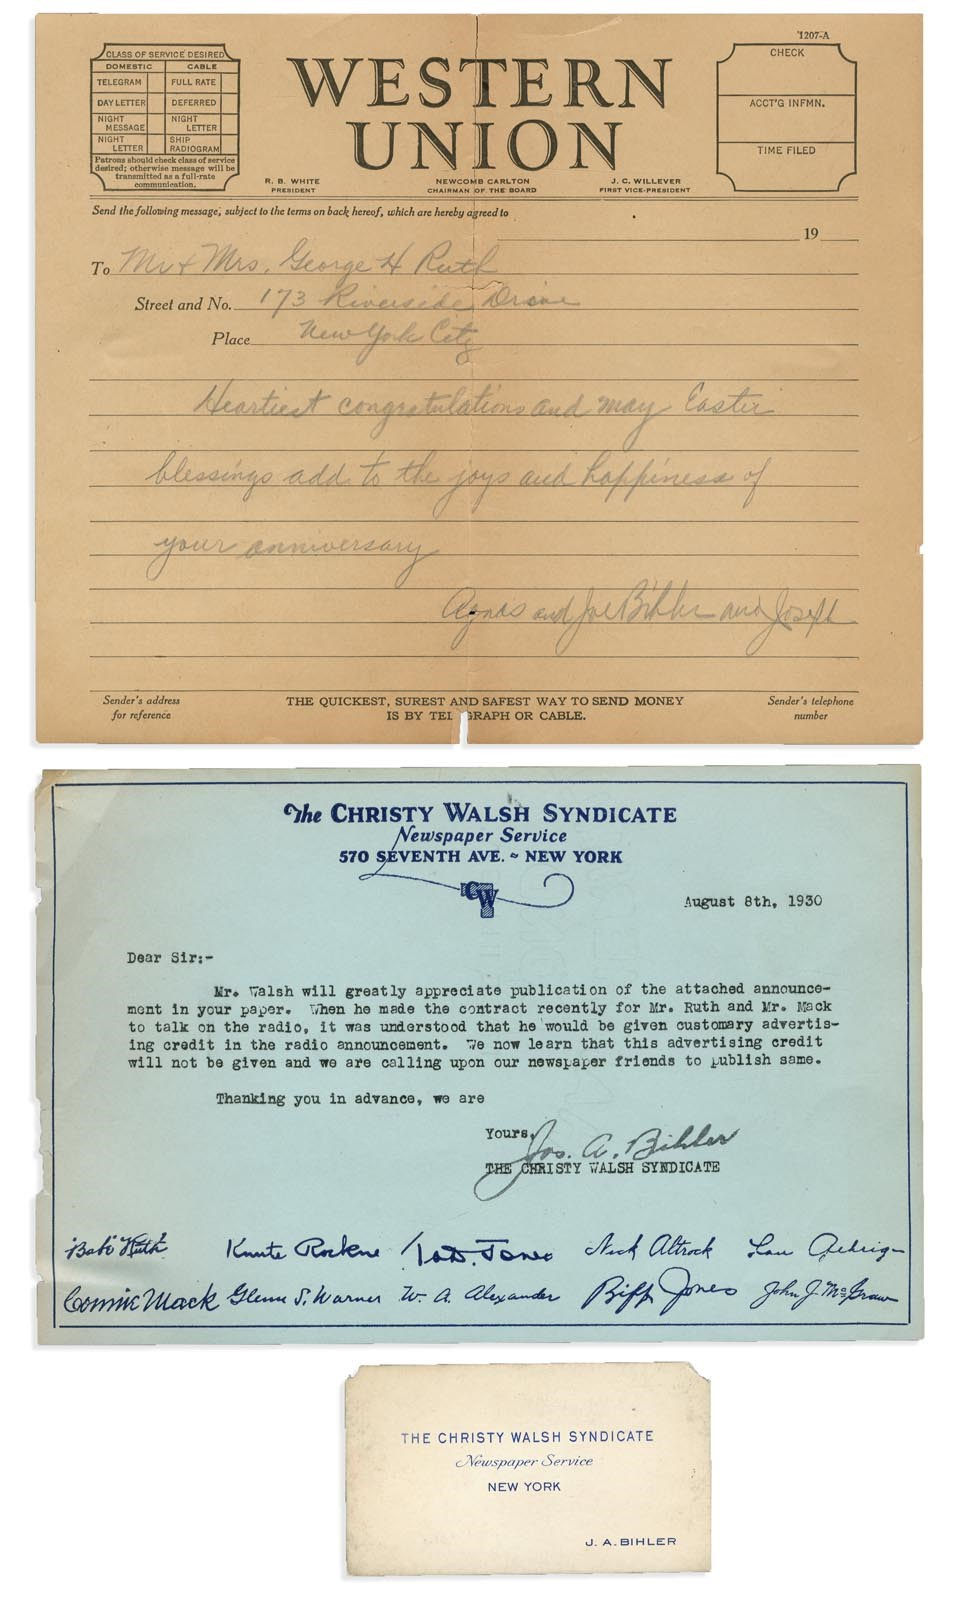 Collection Of Babe Ruth's Right Hand Man - auction